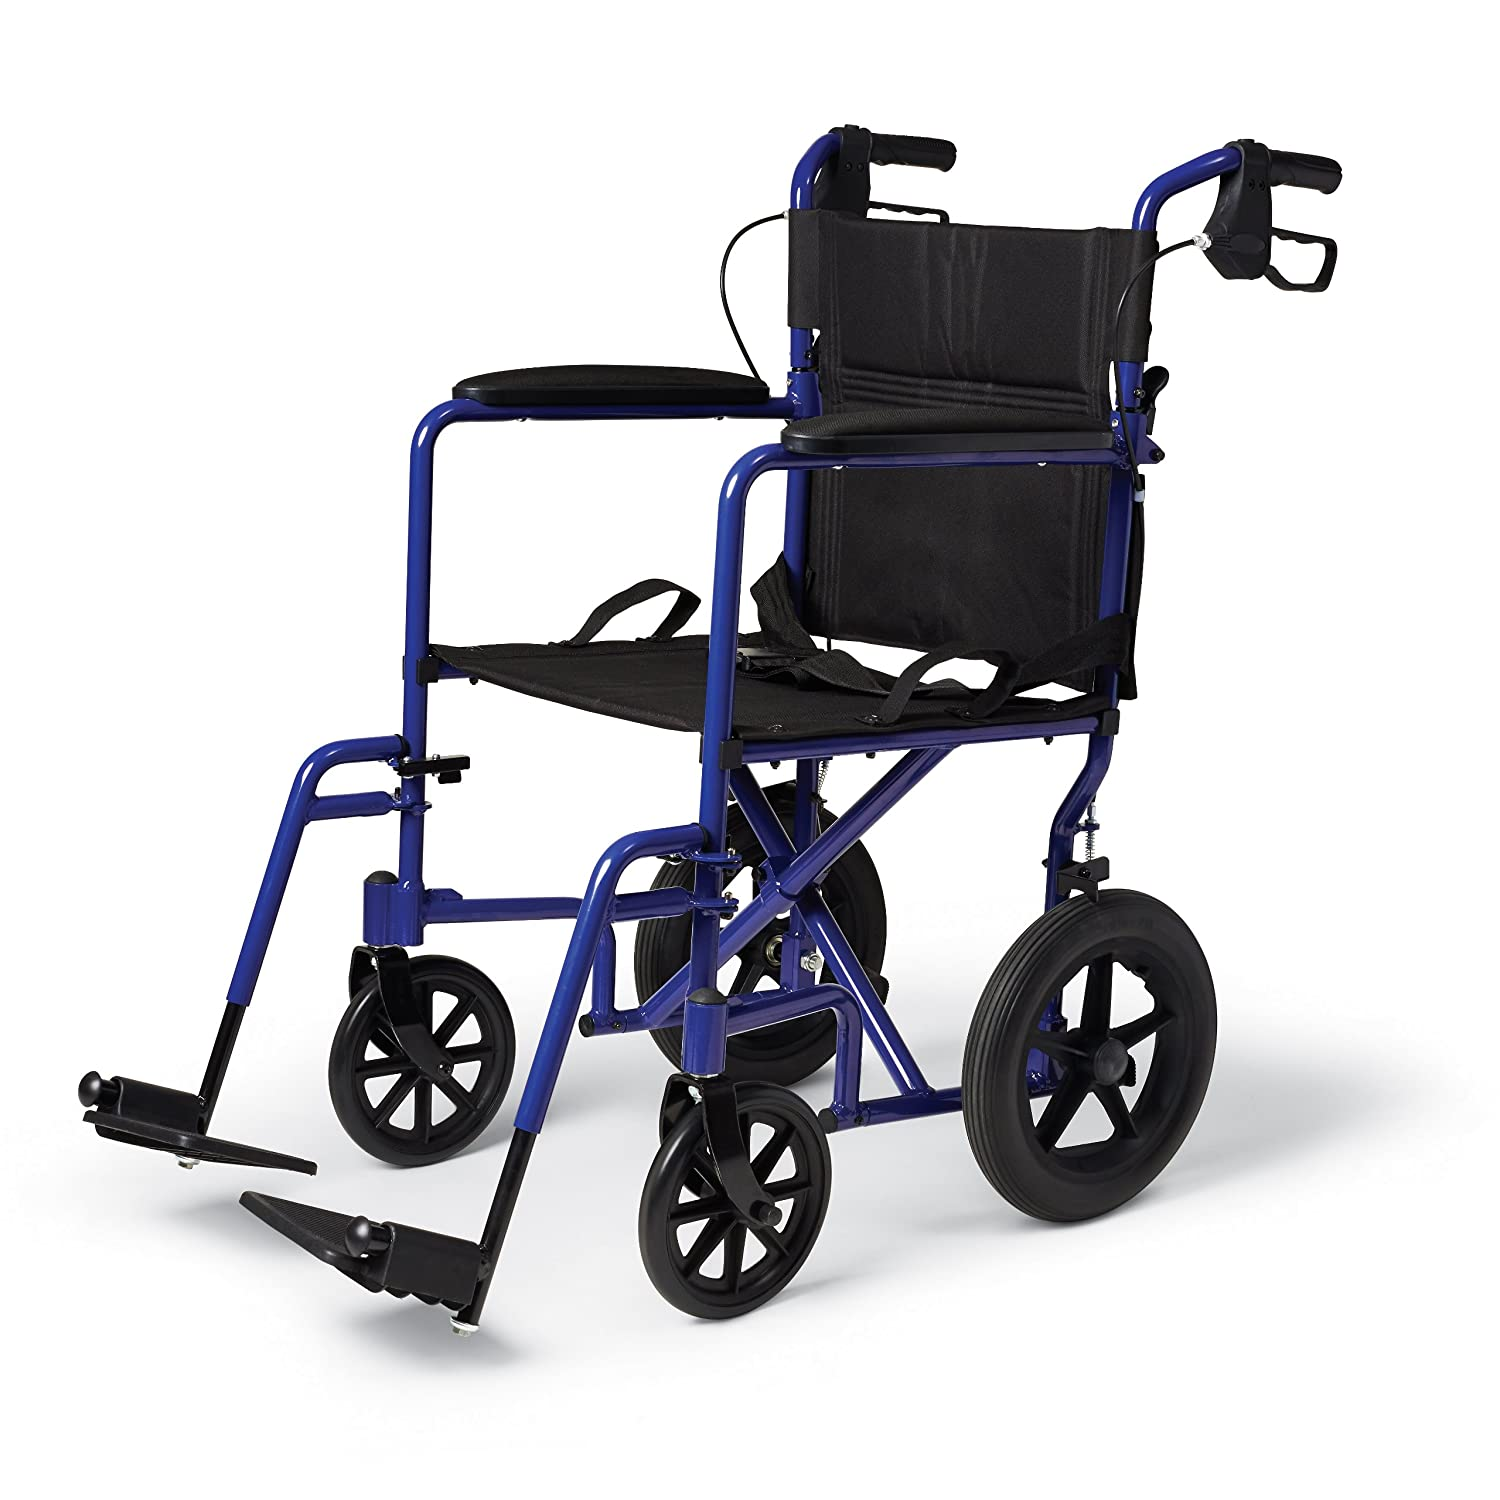 Medline Lightweight Transport Adult Folding Wheelchair with Handbrakes, Blue